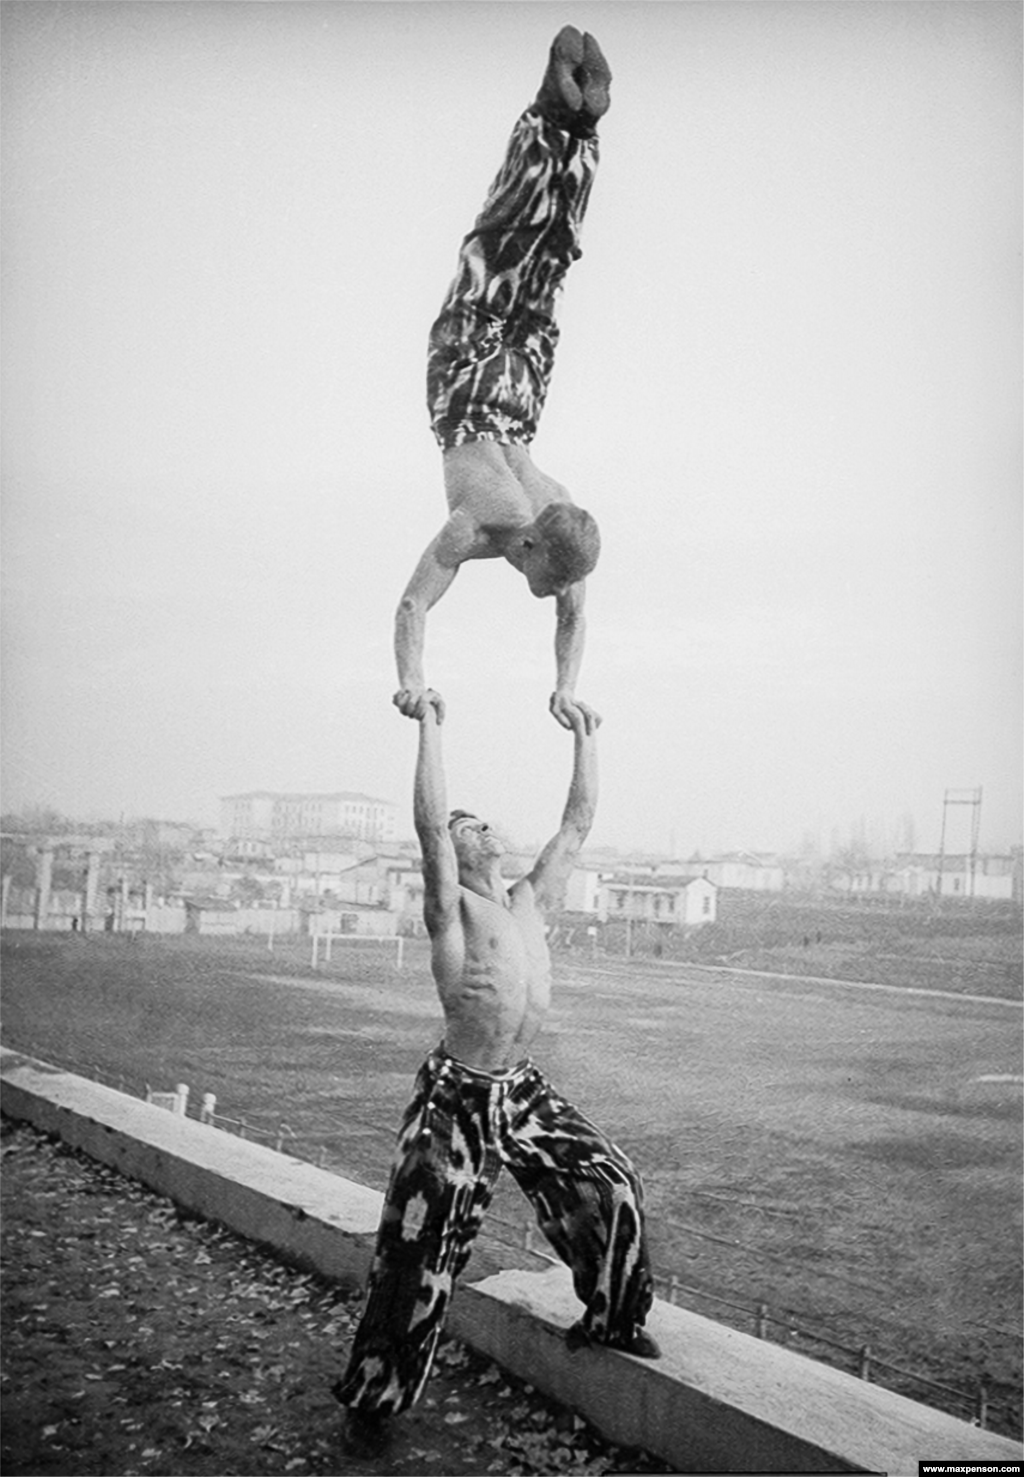 Two acrobats with an arm-quivering display of strength.